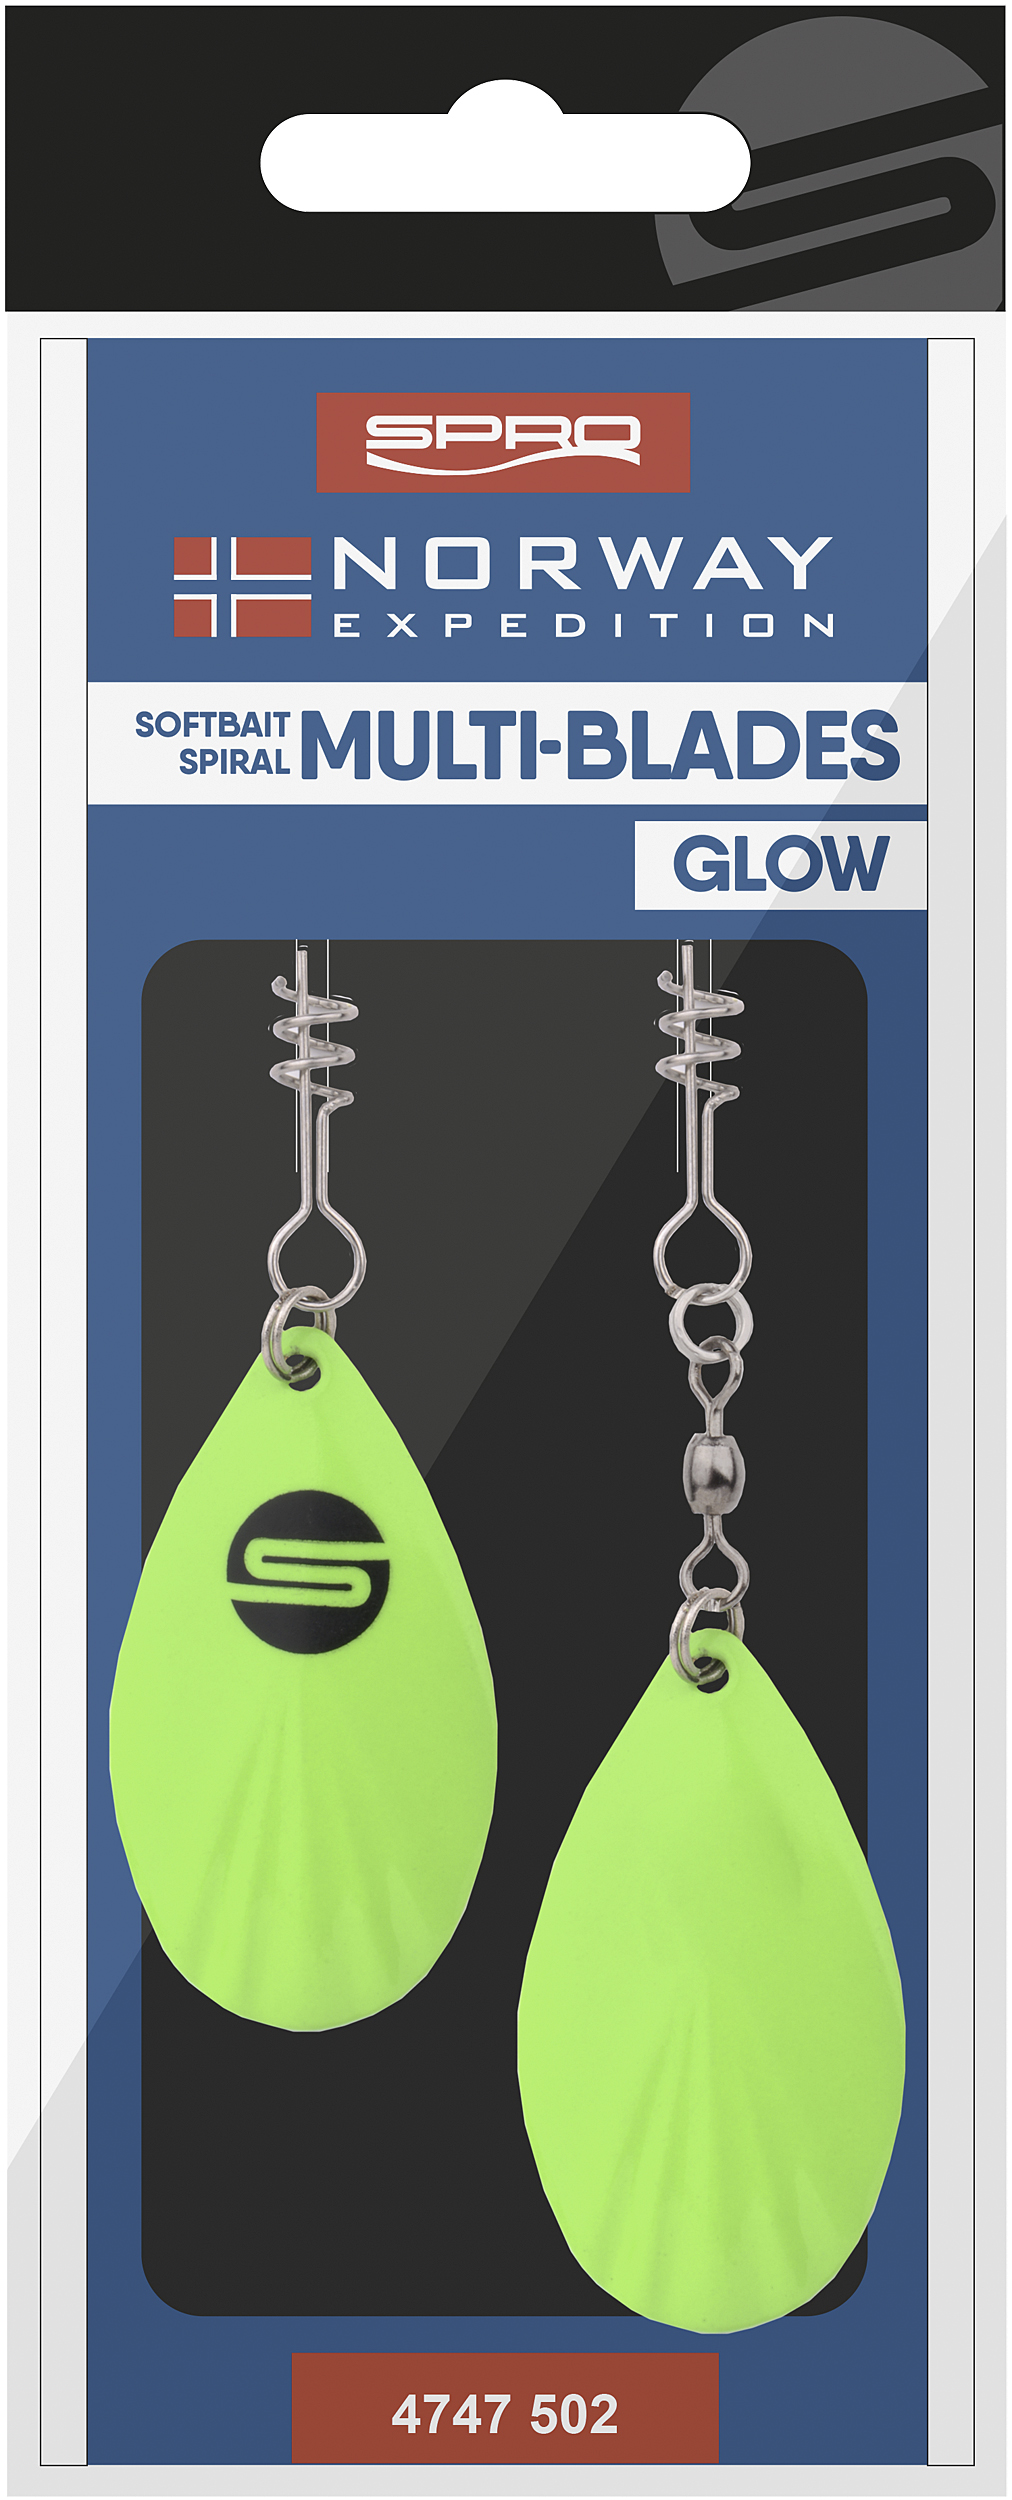 Spro-Norway Expedition Multi-Blades Farbe Glow-1 - Gerlinger.de